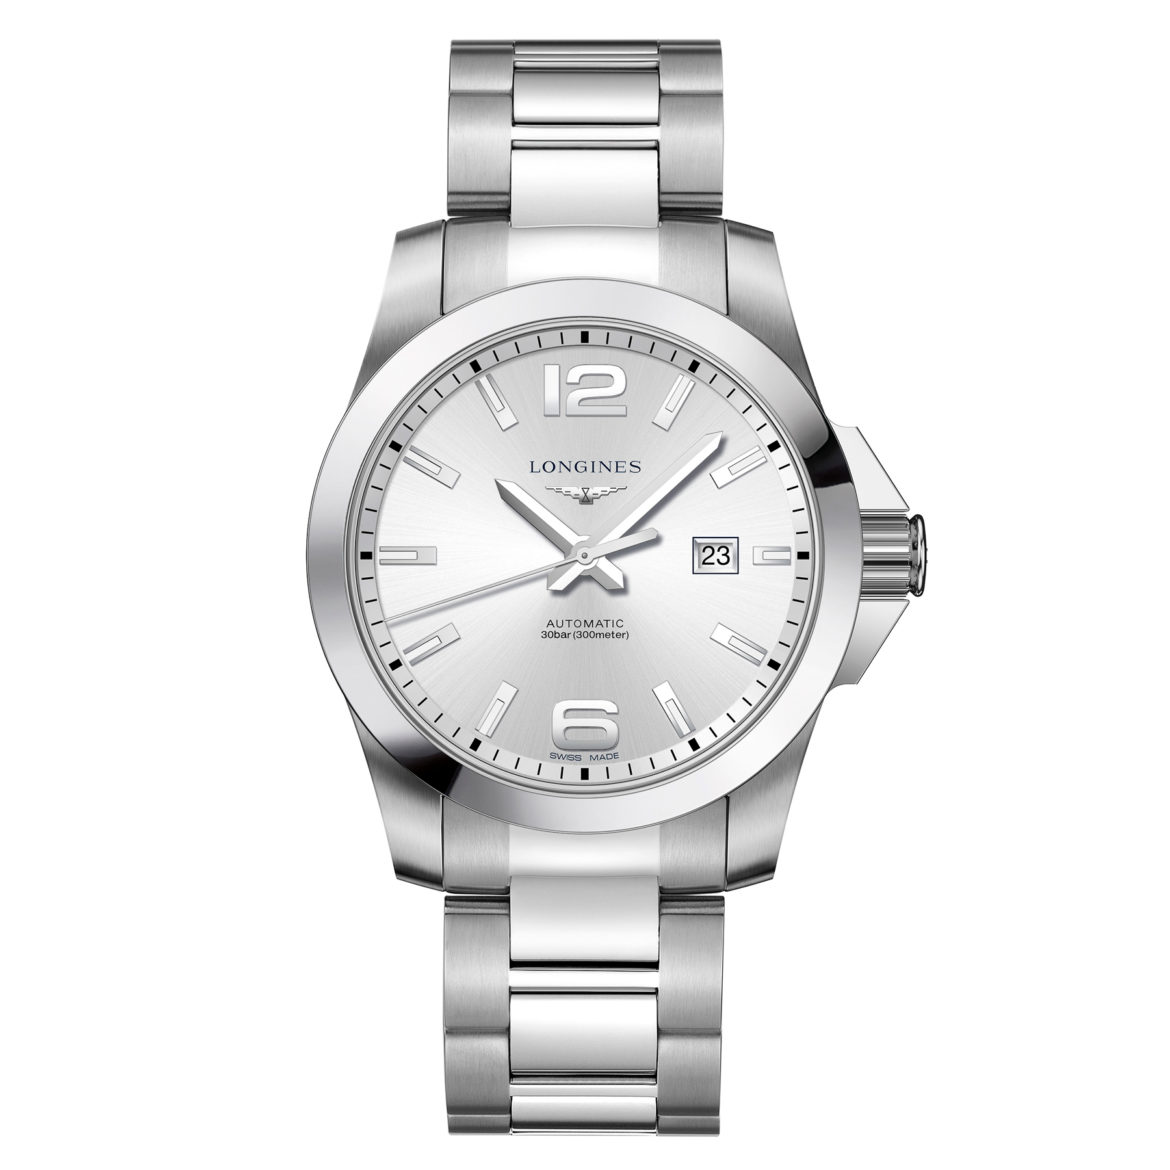 LONGINES</br/>Conquest</br/>L37784766